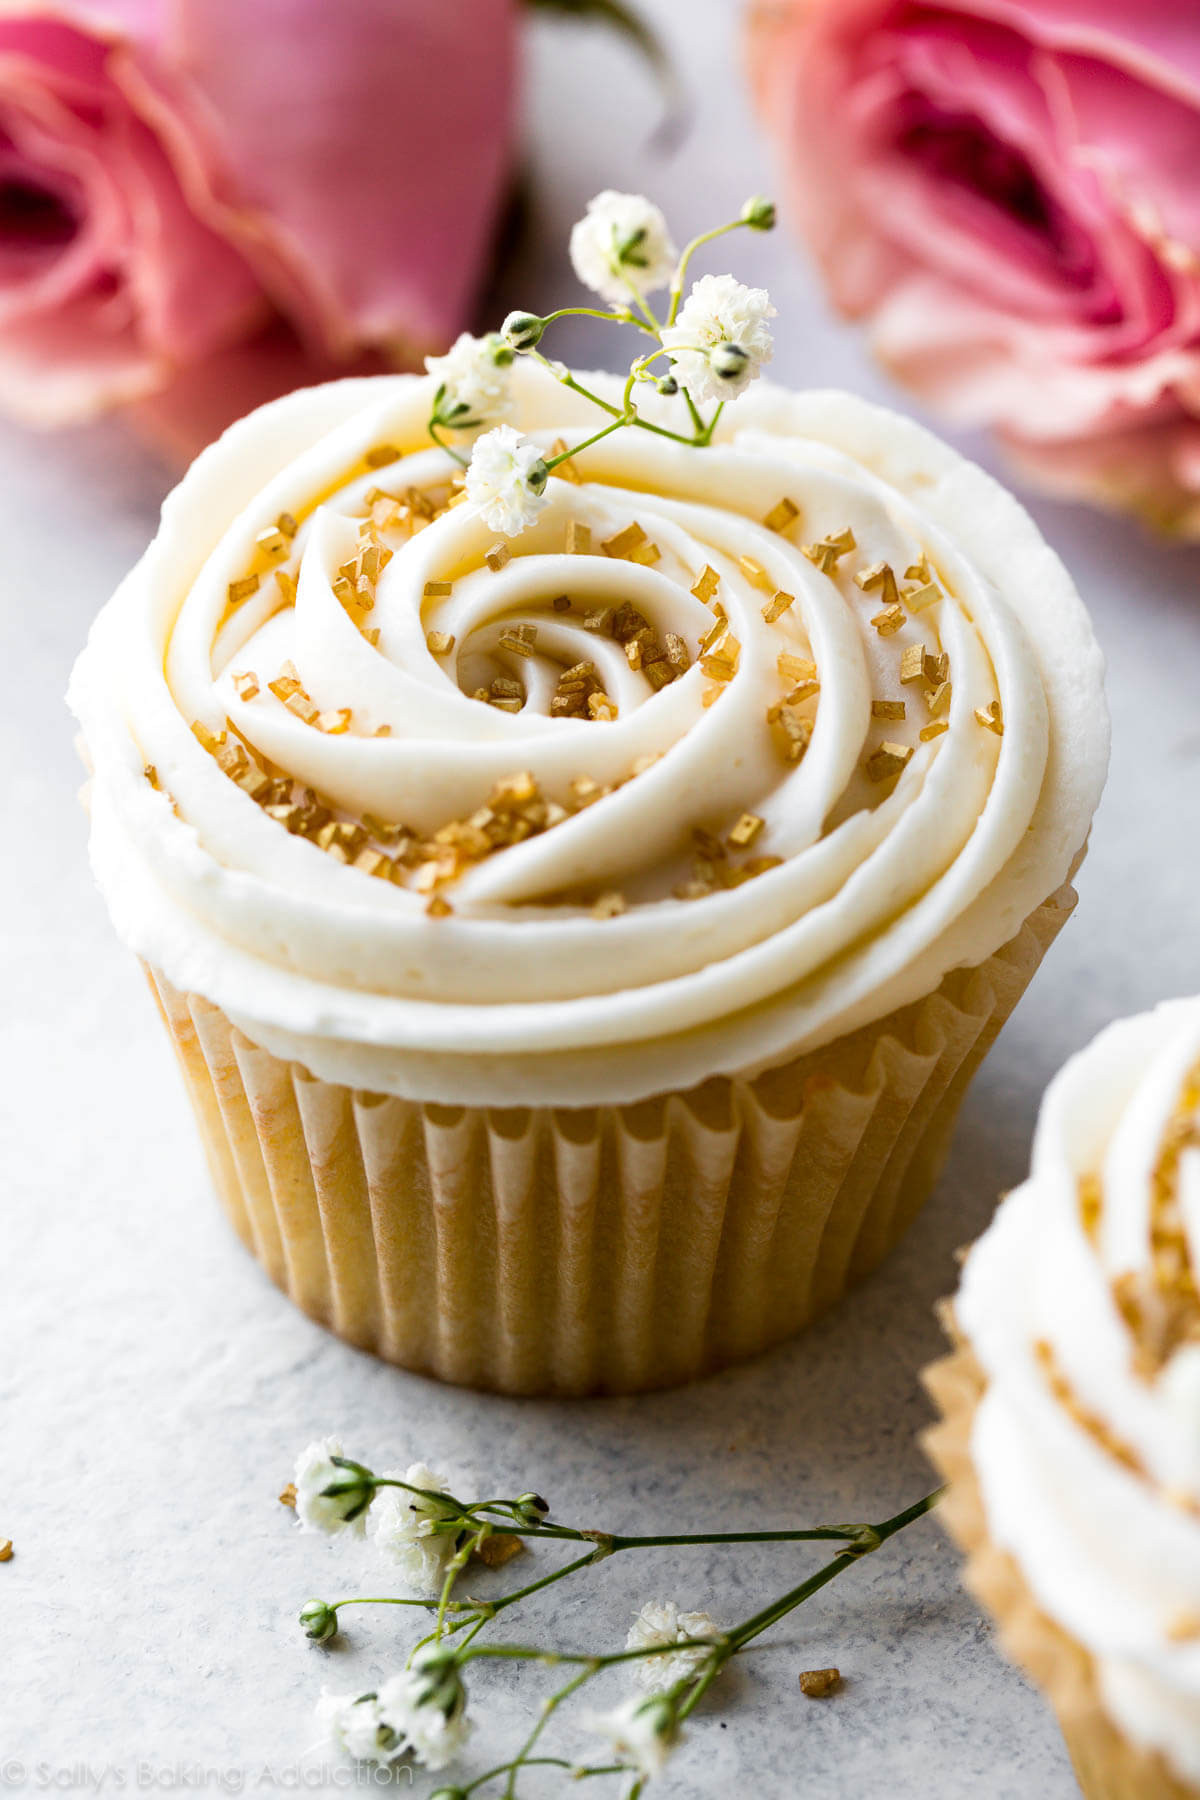 Wedding Cake Cupcakes Recipes  Wedding Cupcakes with Champagne Frosting Sallys Baking